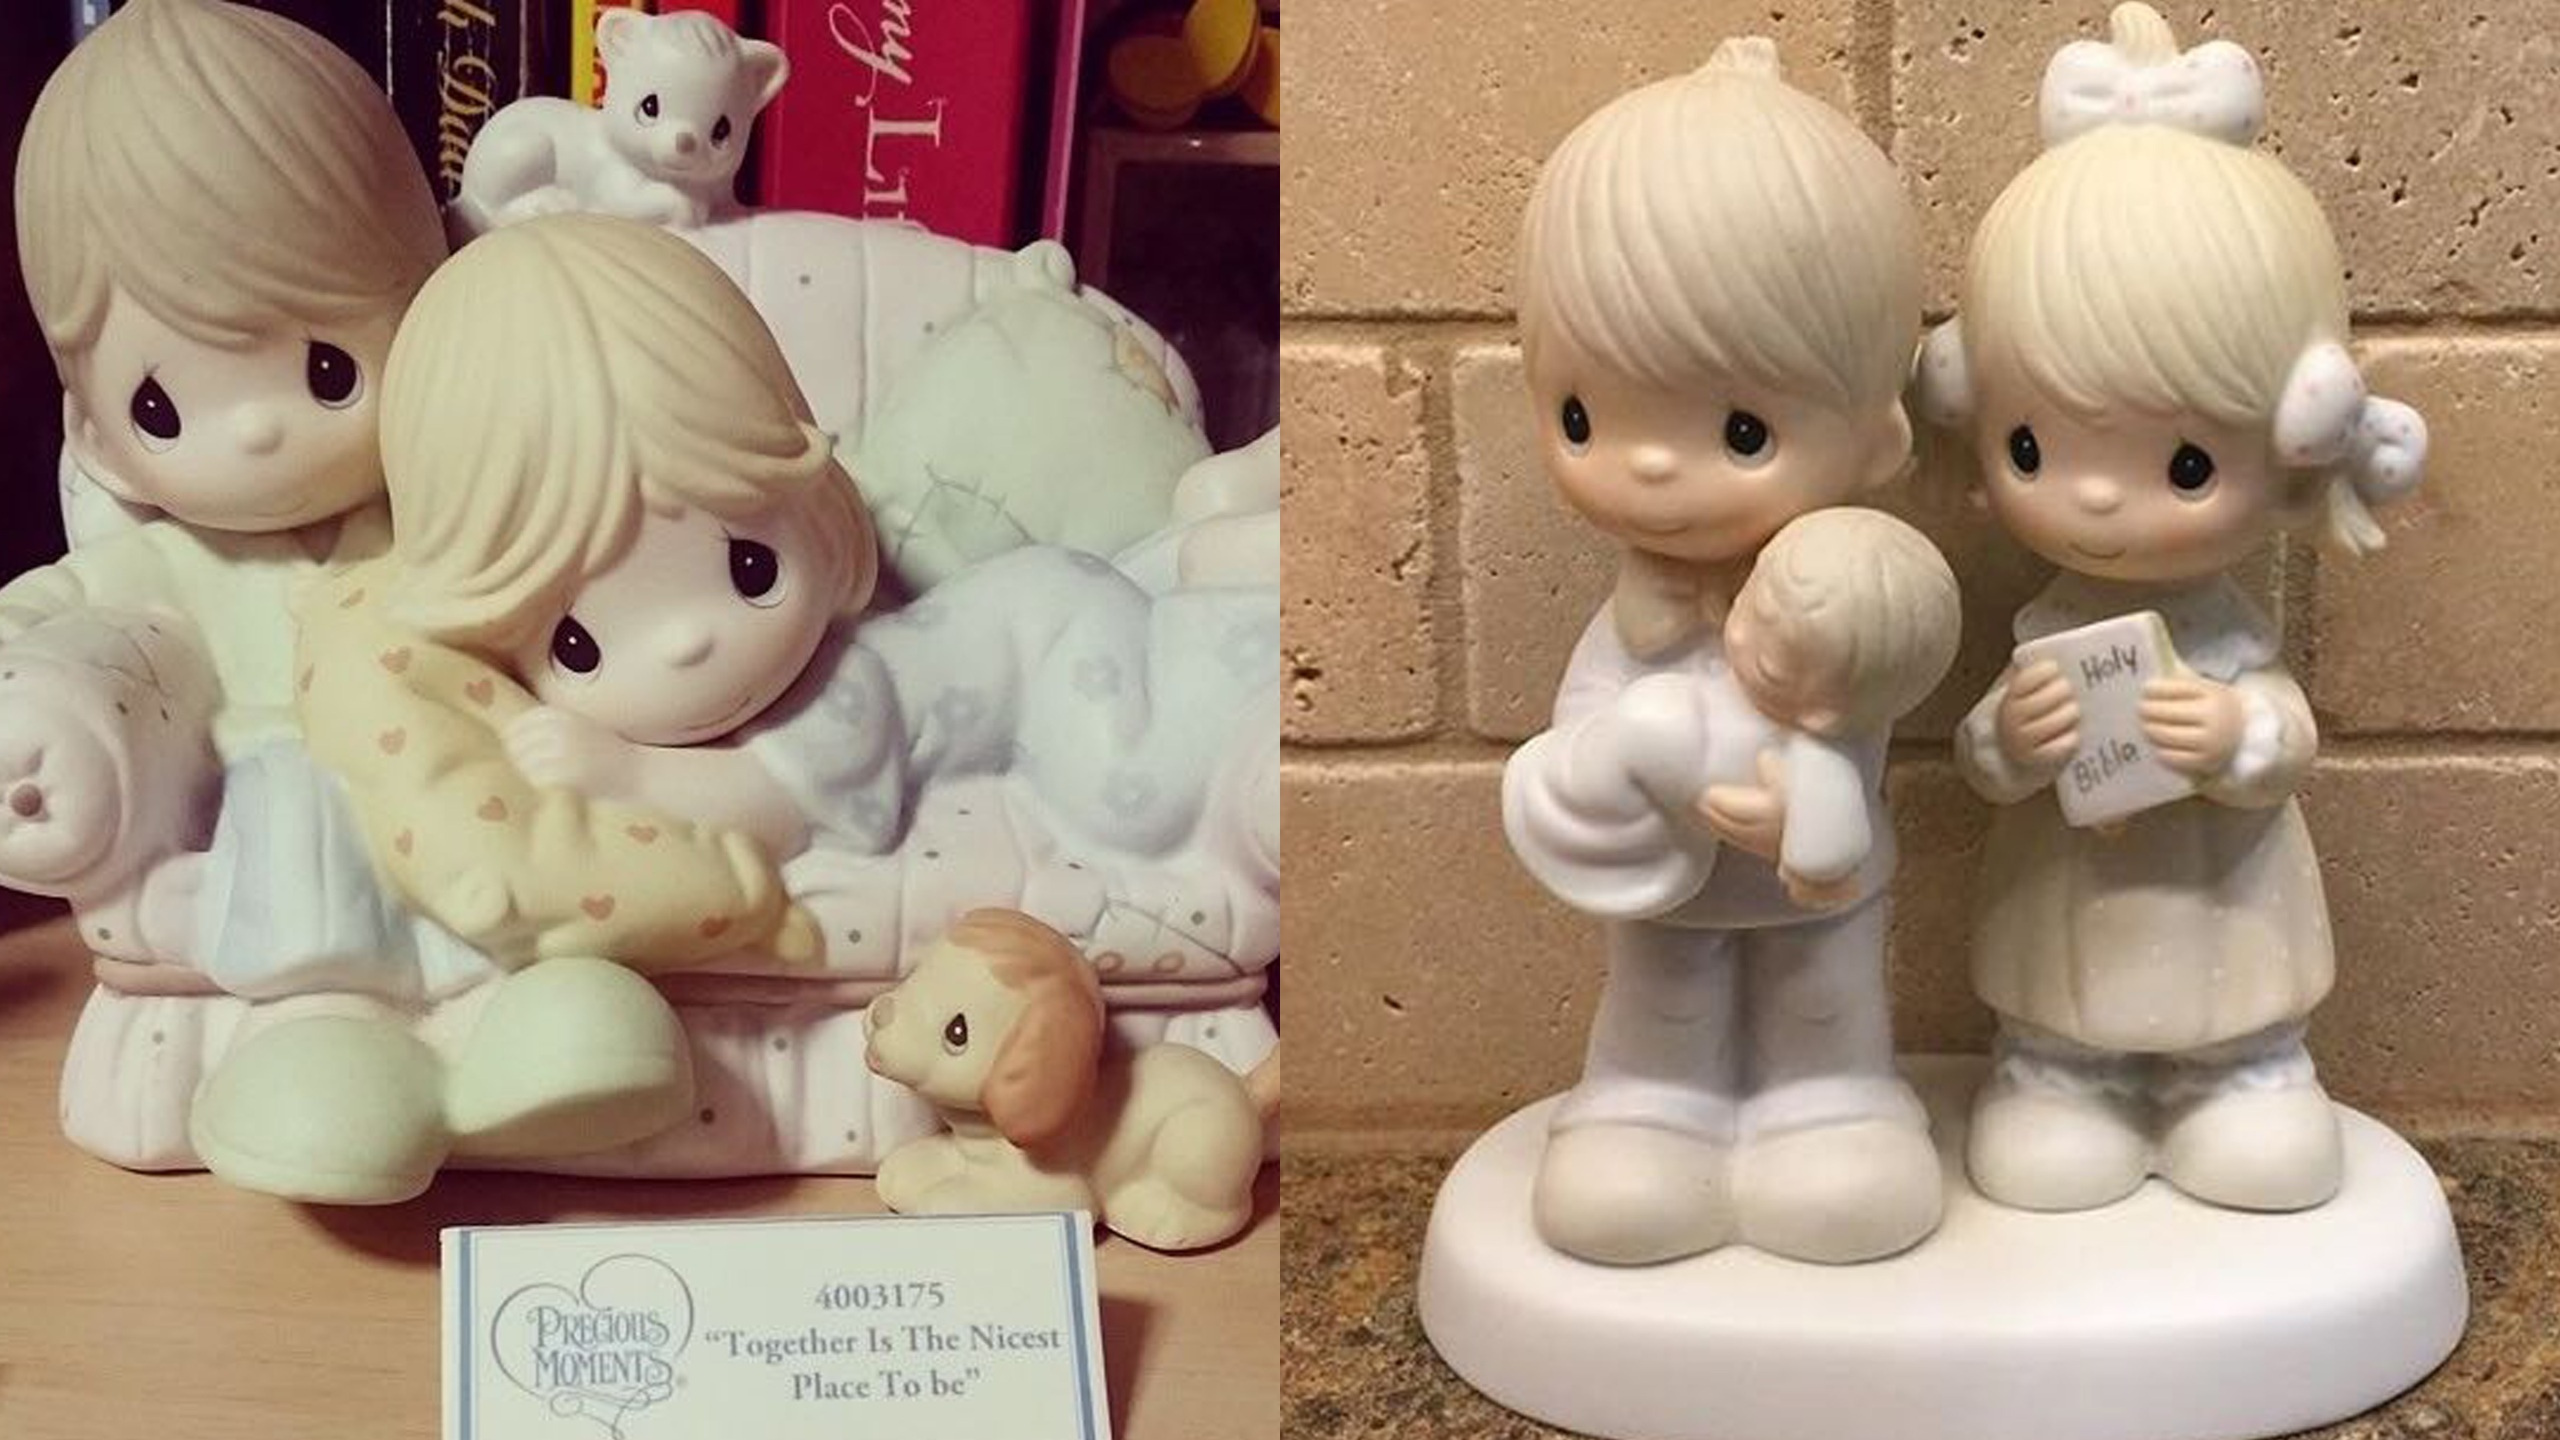 Your Precious Moments Figurines Could Be Worth Something Fox 46 Charlotte